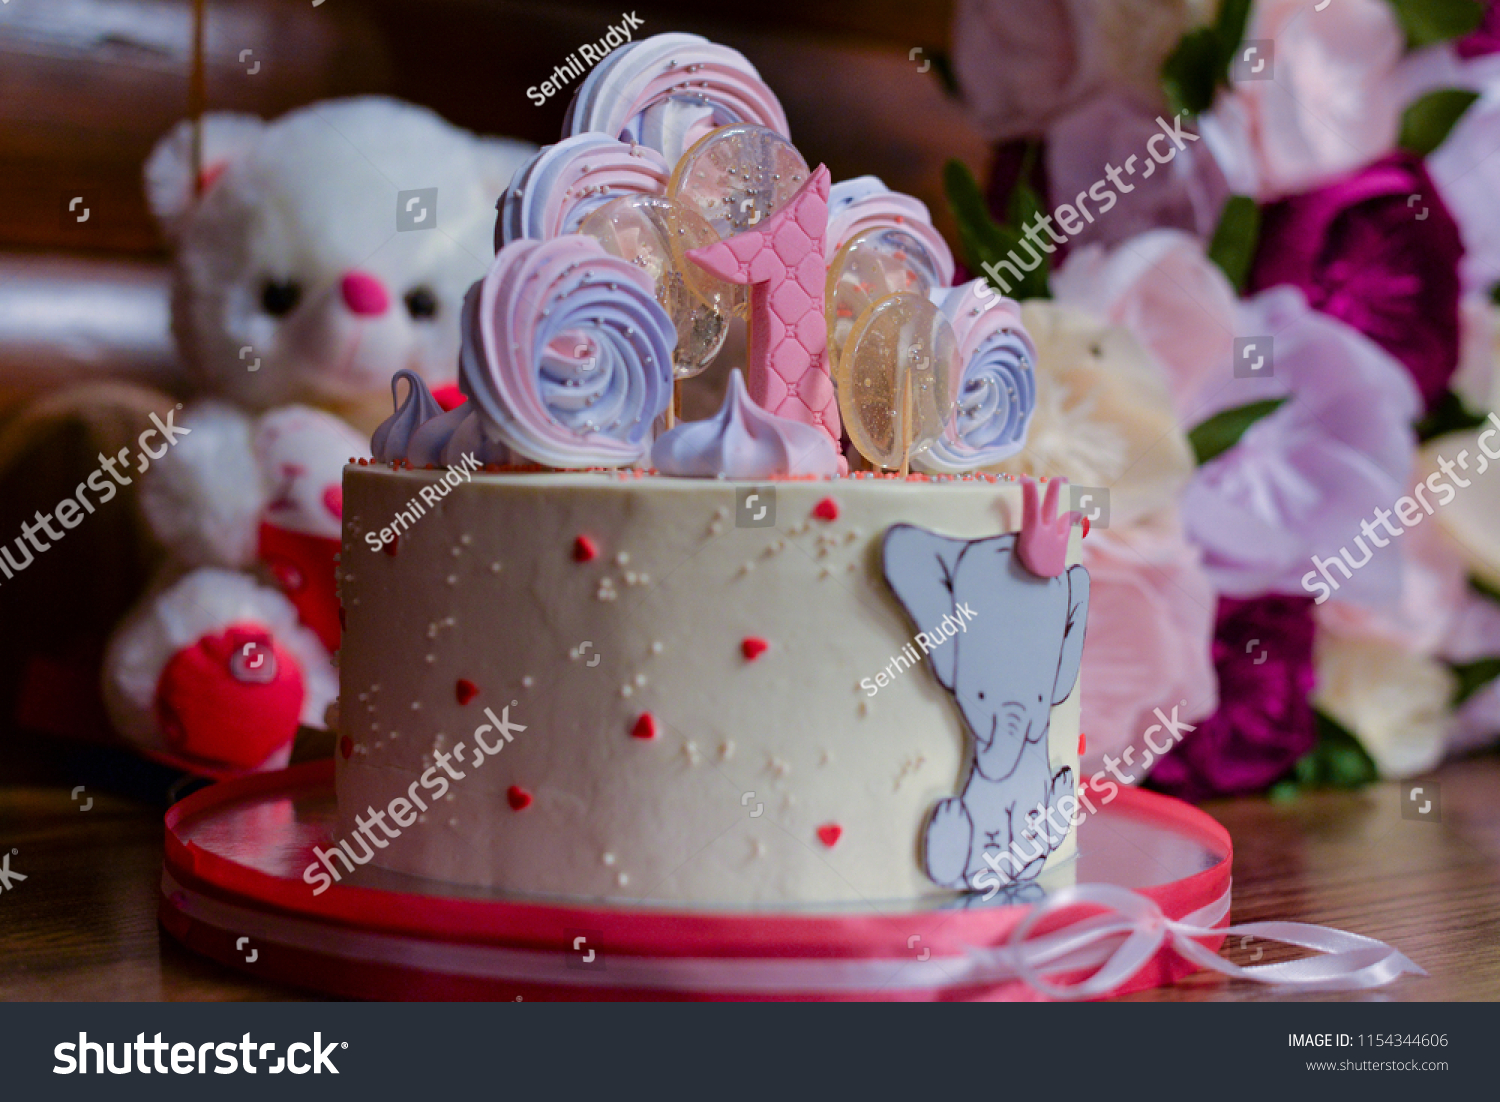 Cake Made From White Mastic With Candies For Birthday Against The Background Of Flowers